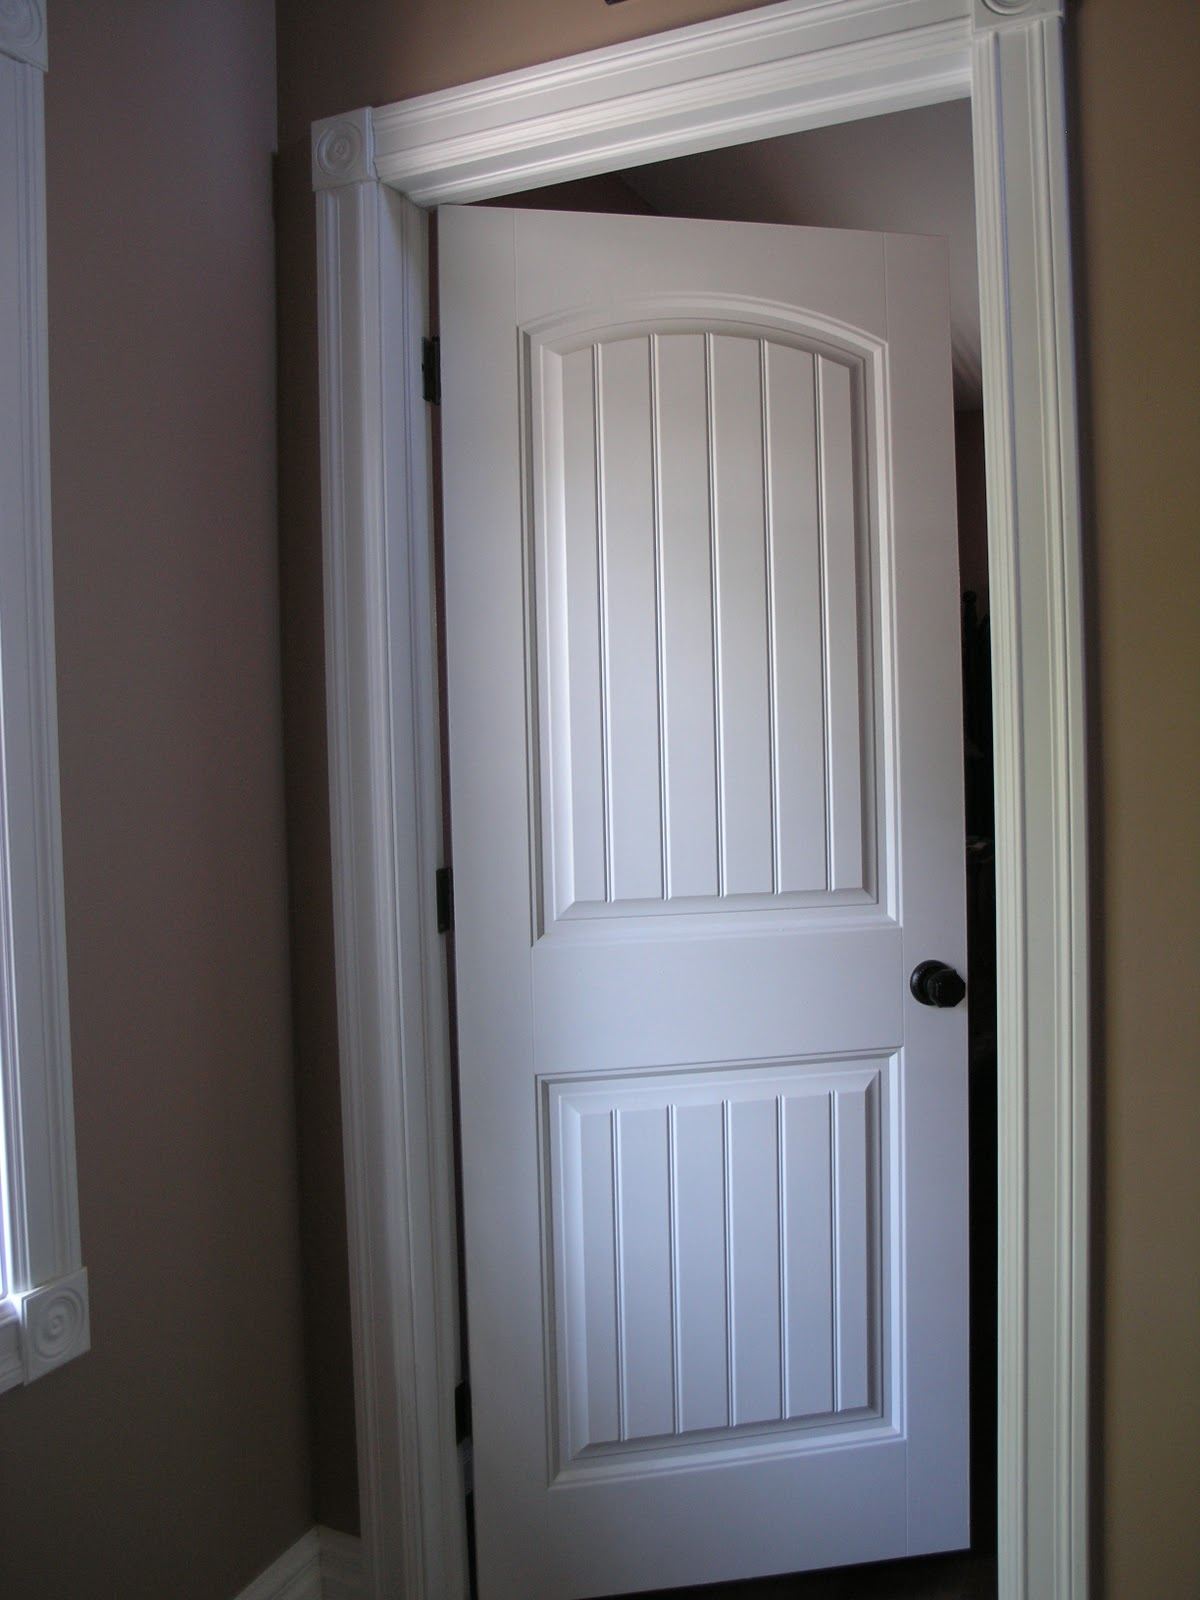 Interior Exterior Doors Of Home For Sale Liverpool Nova Scotia